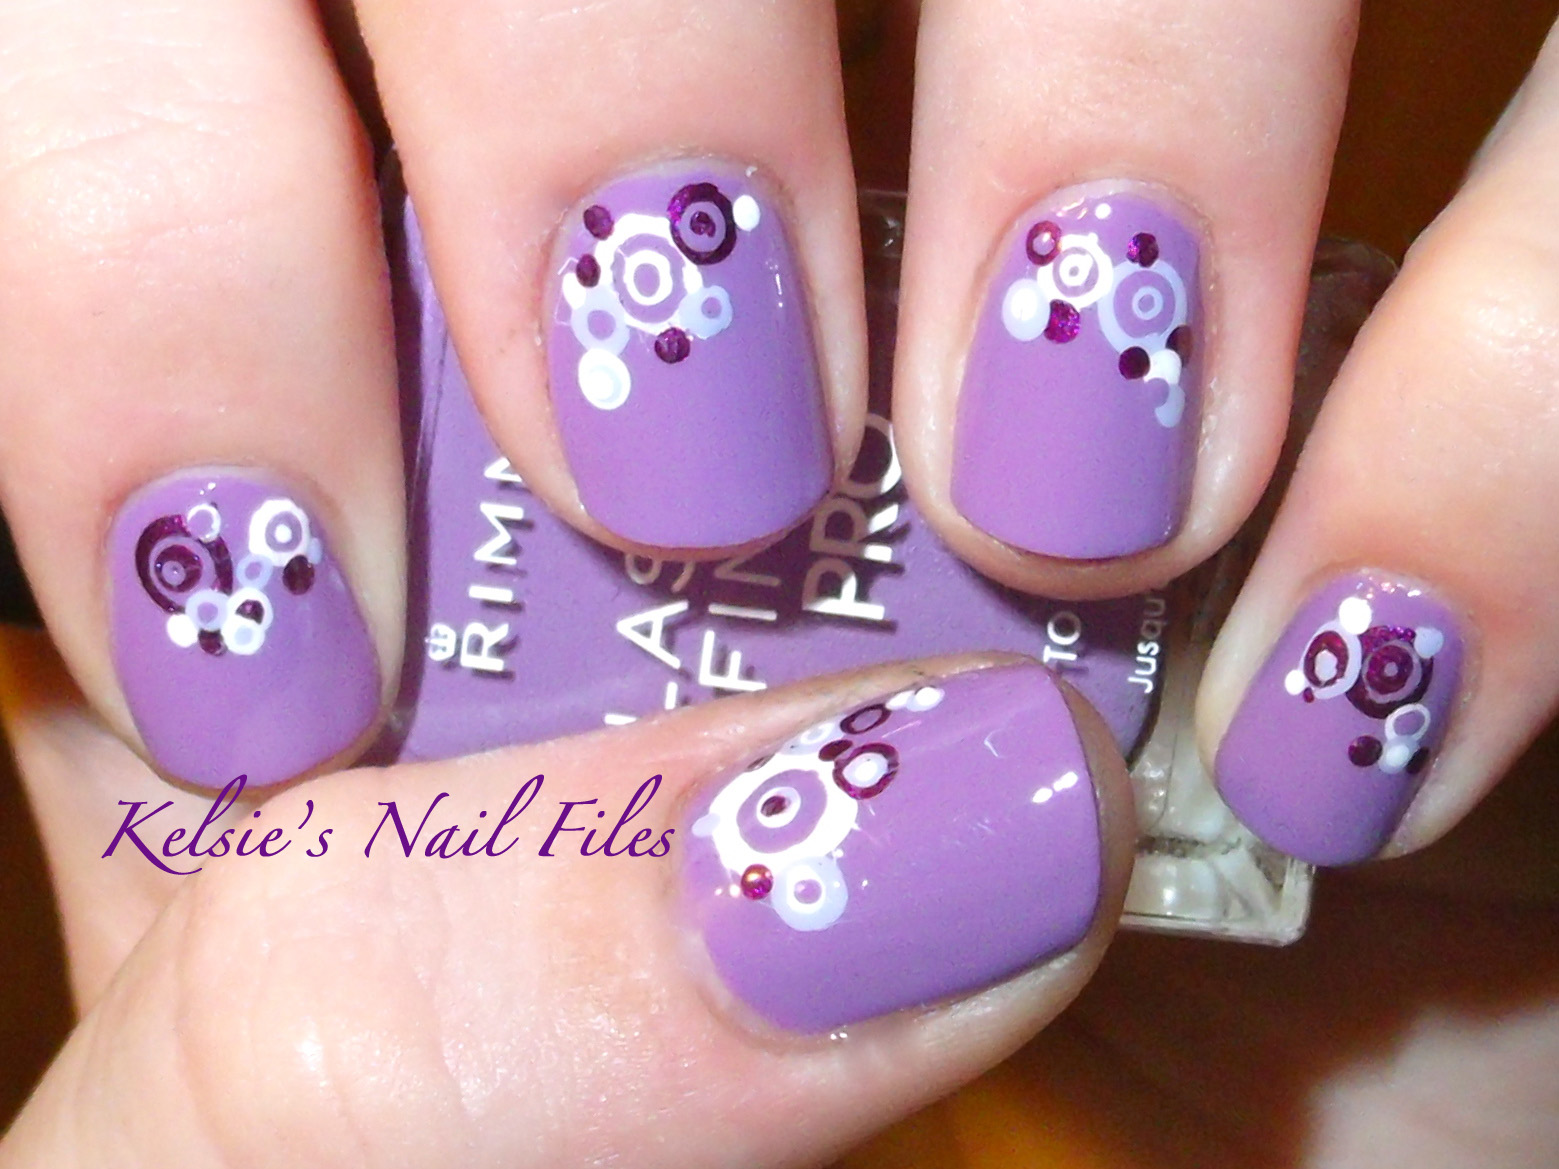 Nail designs dotting tool nail art designs dotting tool nail art designs03 gedc01512copy prinsesfo Gallery